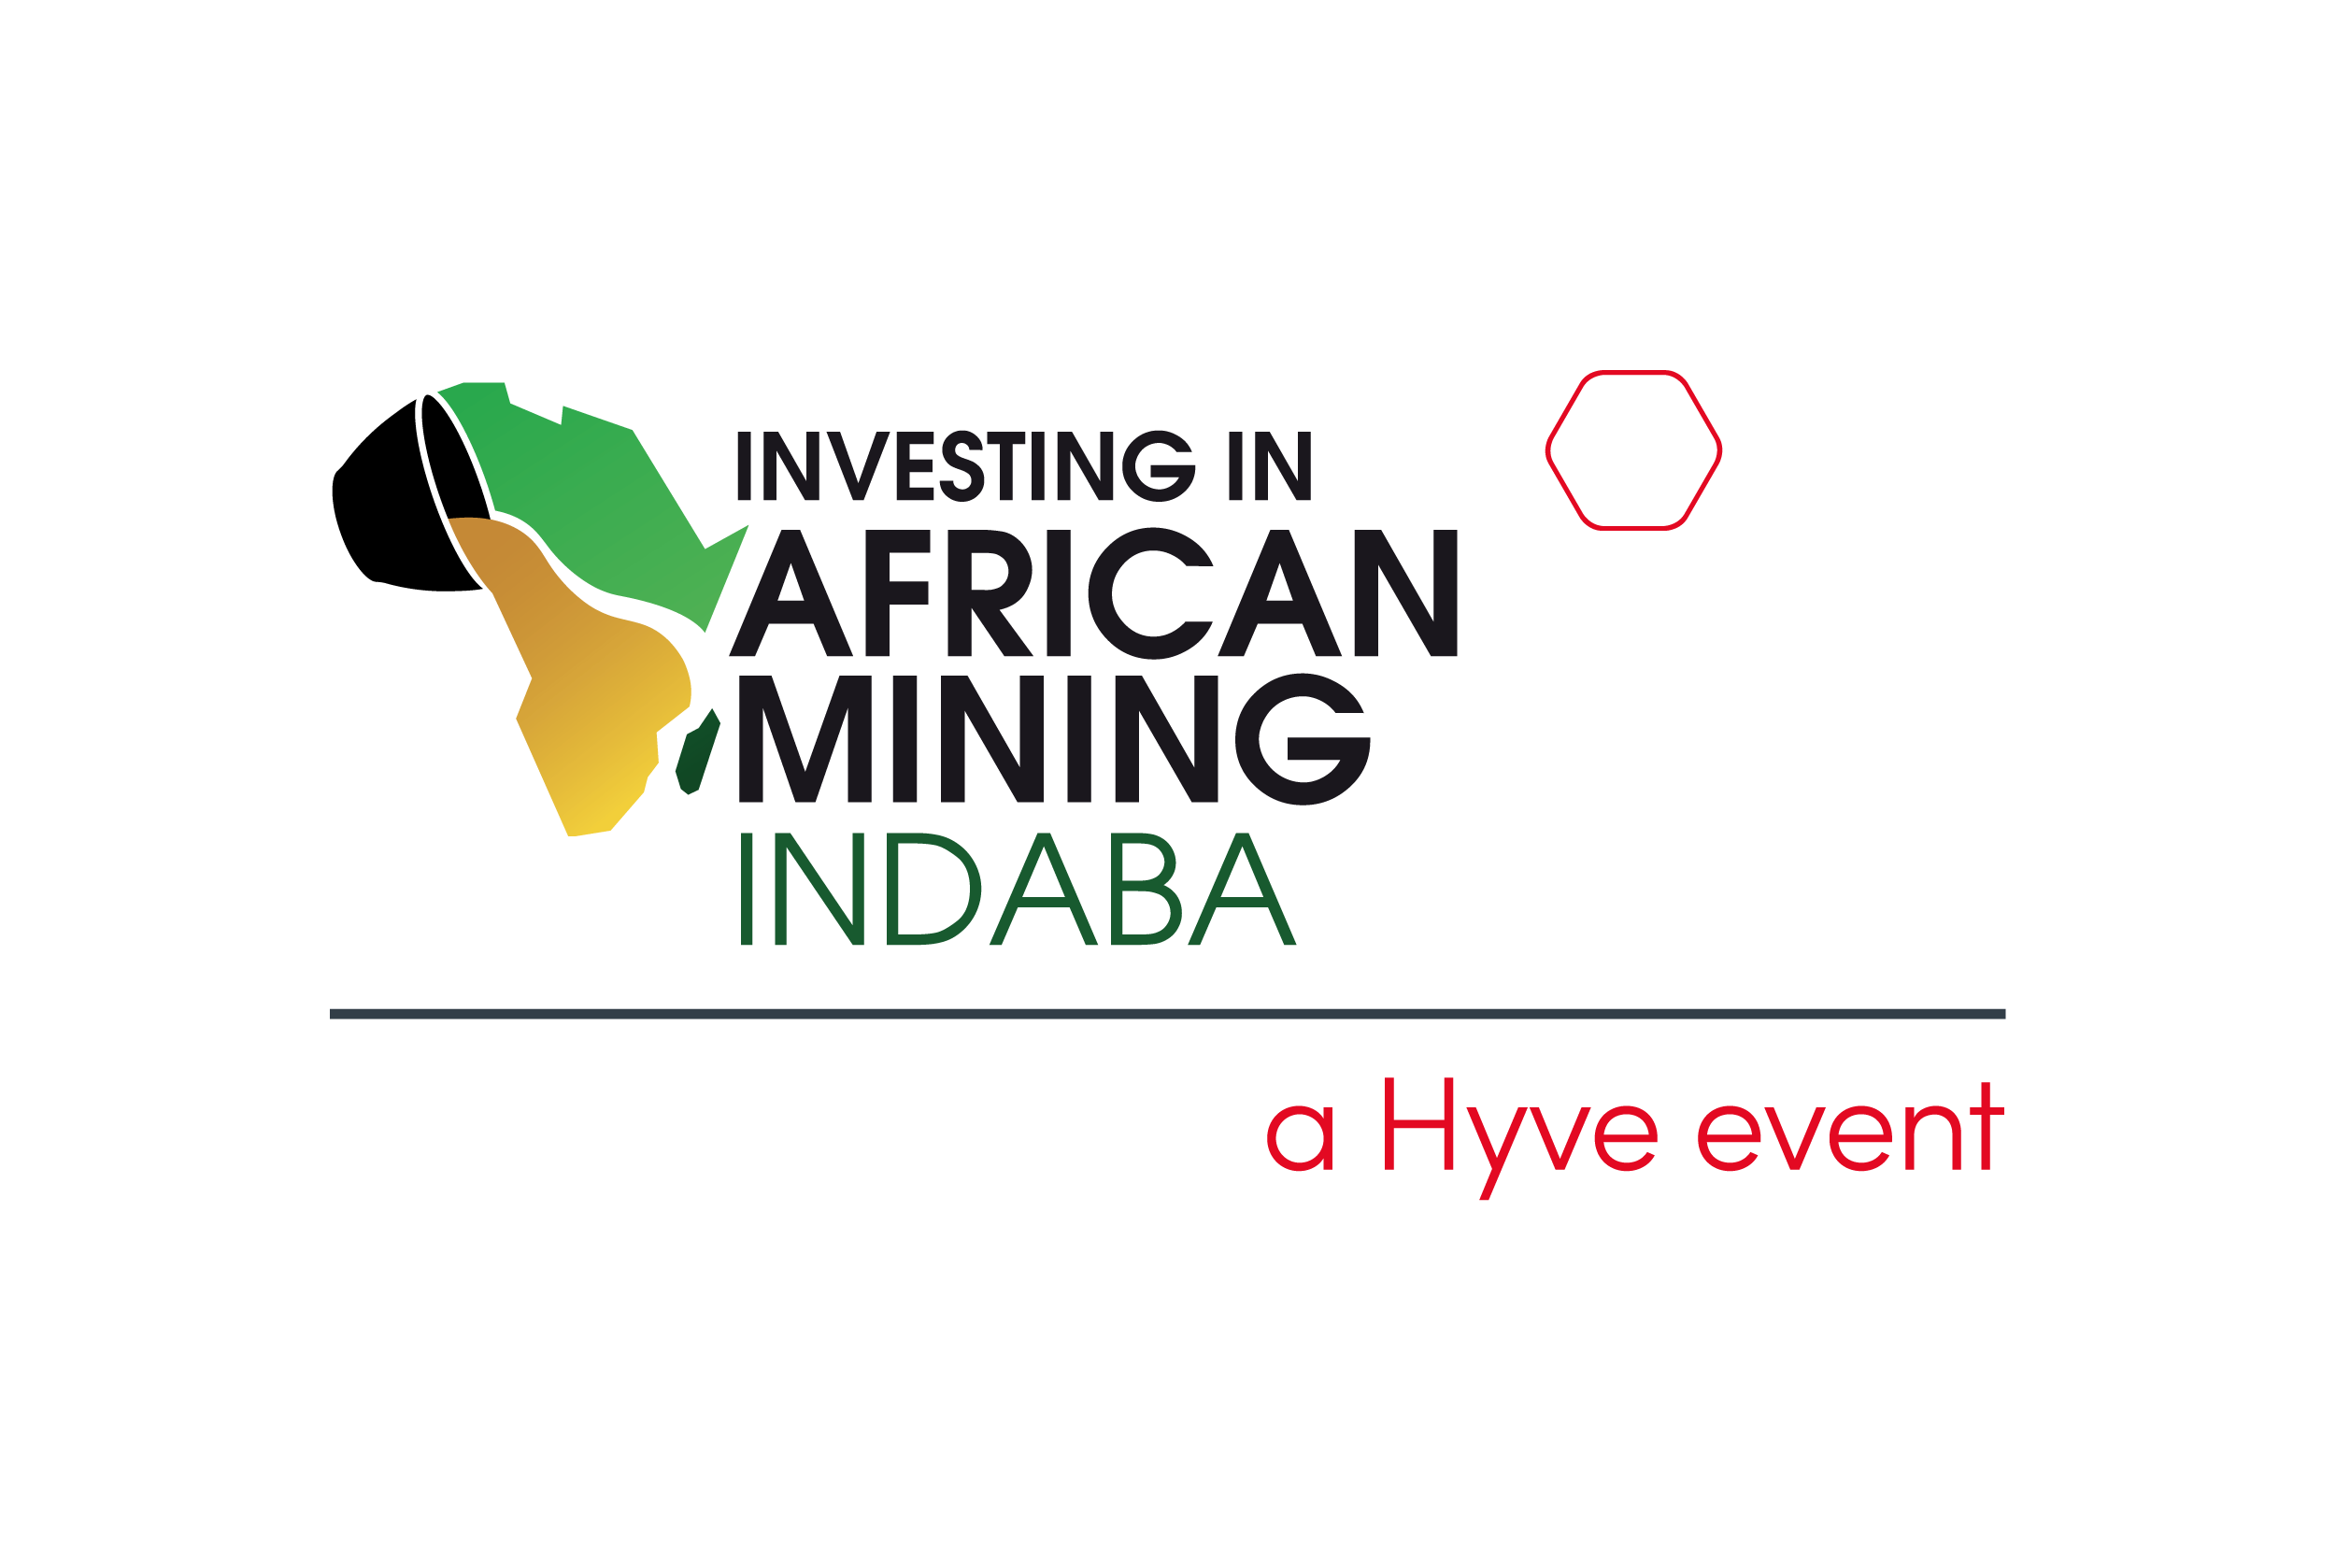 Democratic Republic of Congo (DRC)'s President H.E Félix Tshisekedi confirmed to deliver the keynote address at Mining Indaba Virtual